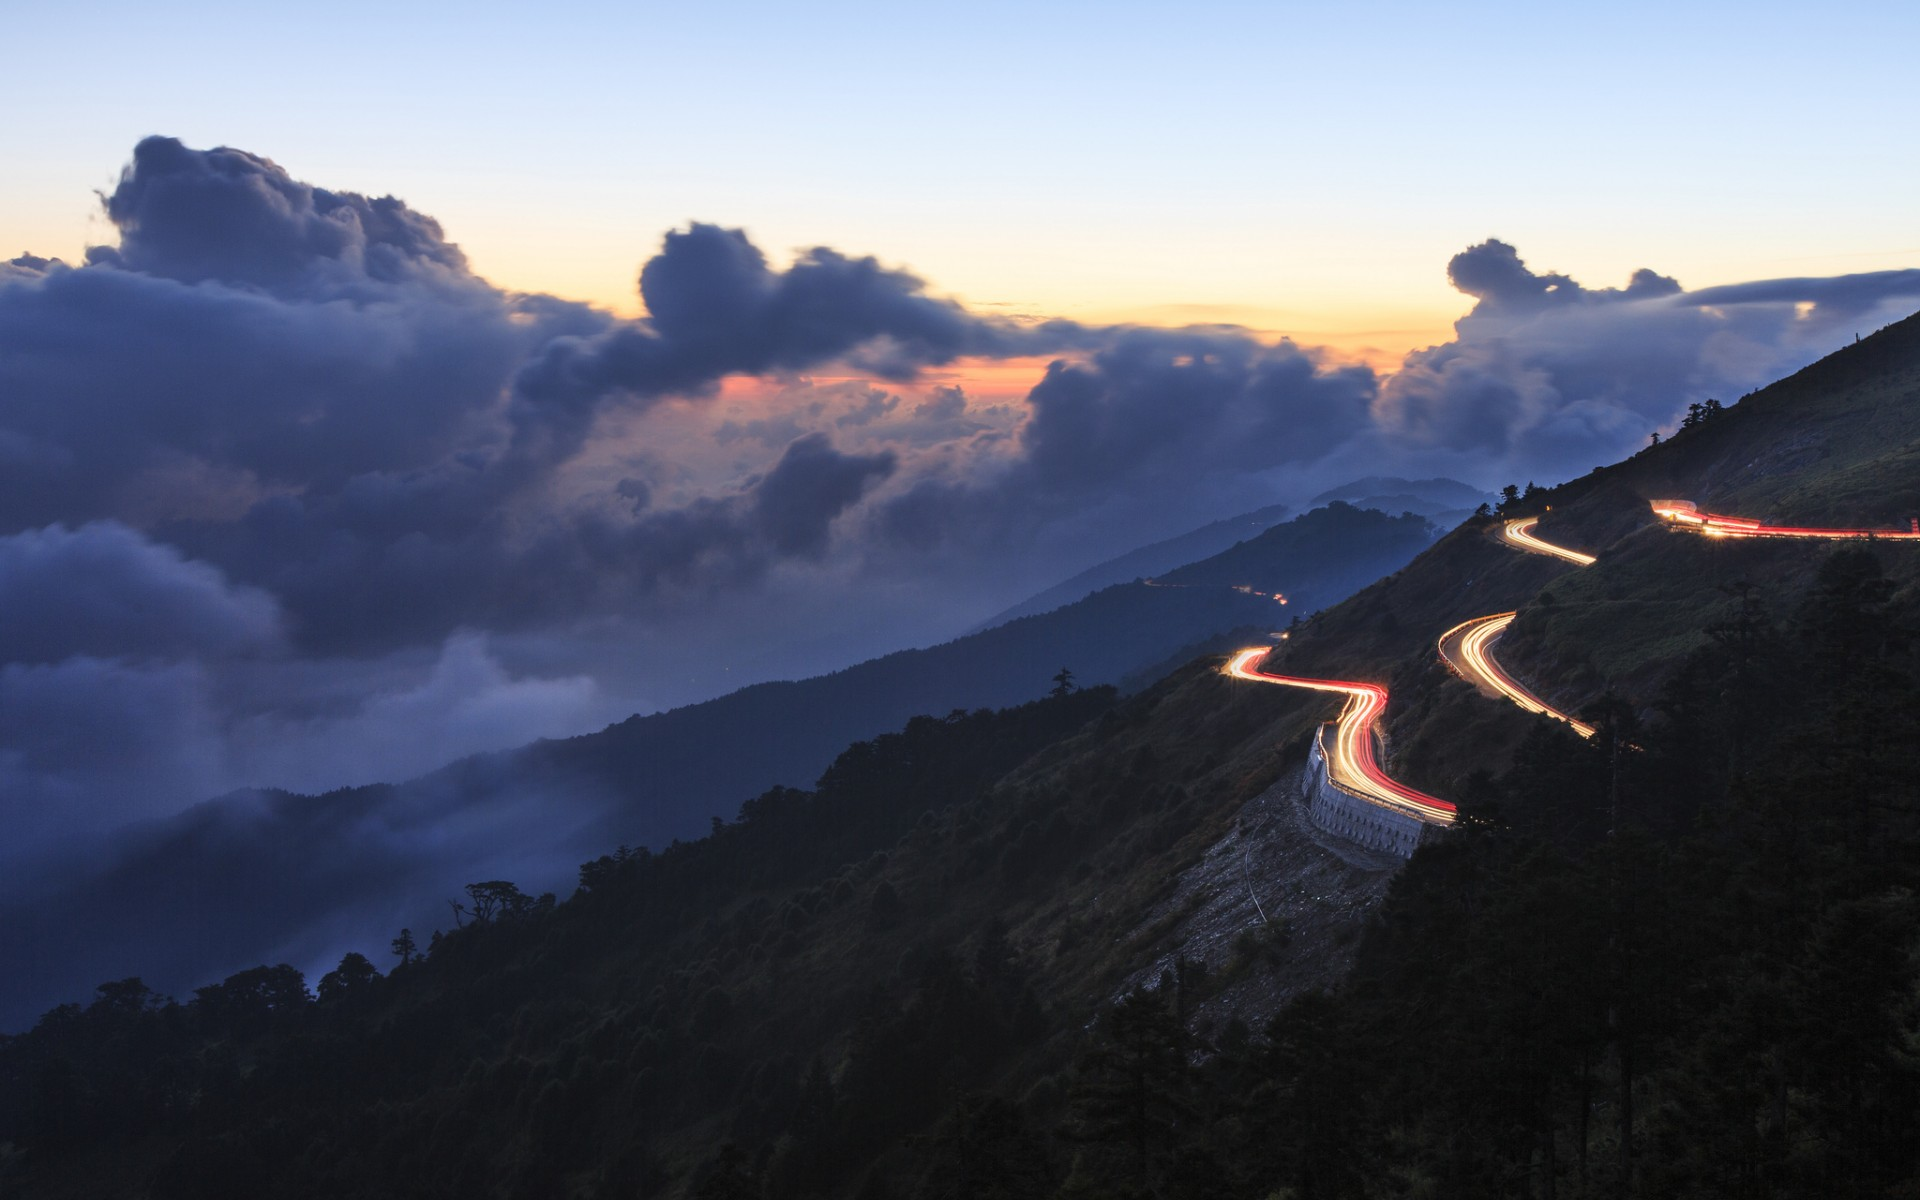 evening  hills  serpentine  road  lights  clouds  sky sunset landscape